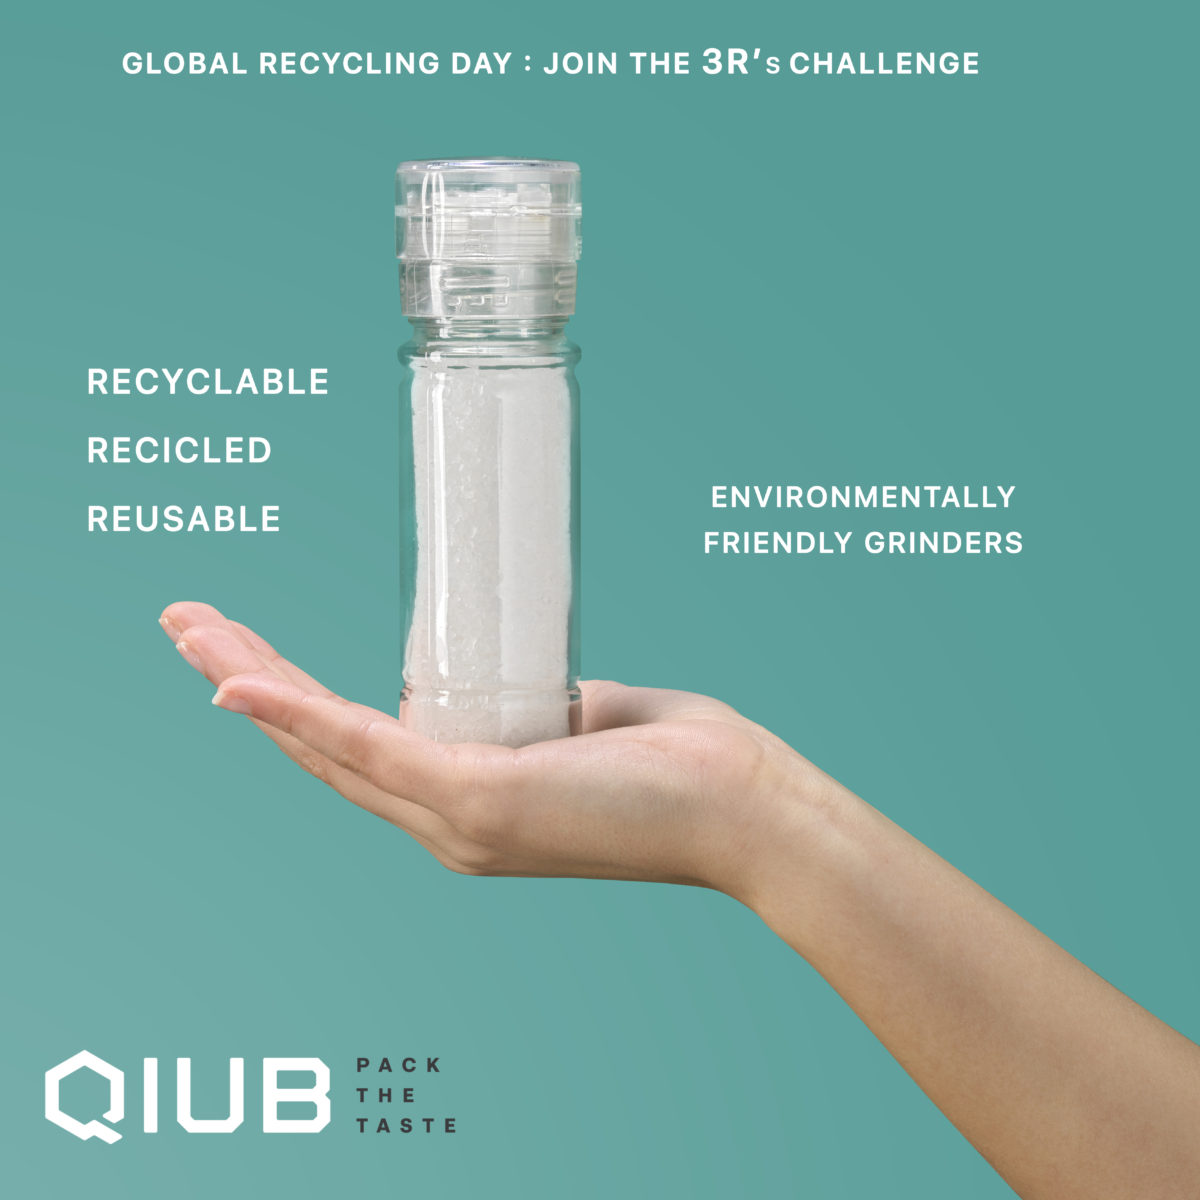 Global Recycling Day : Join the 3R's Challenge!